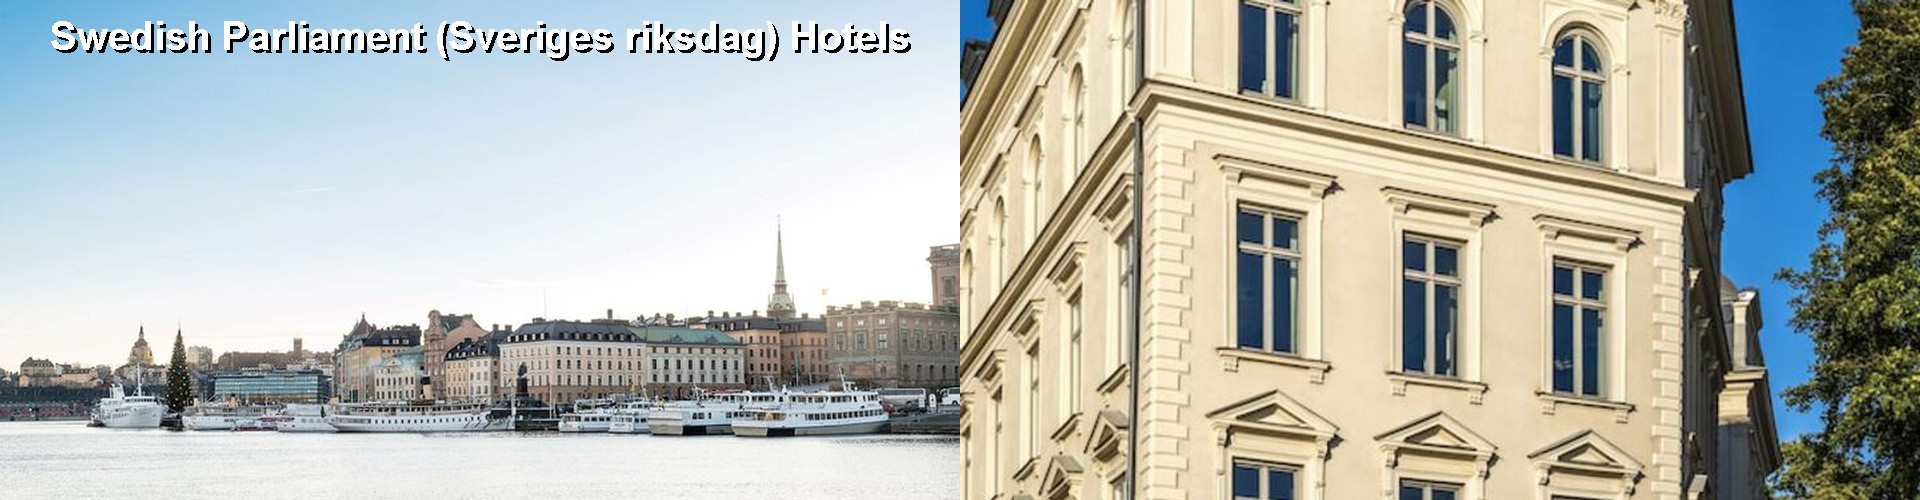 5 Best Hotels near Swedish Parliament (Sveriges riksdag)